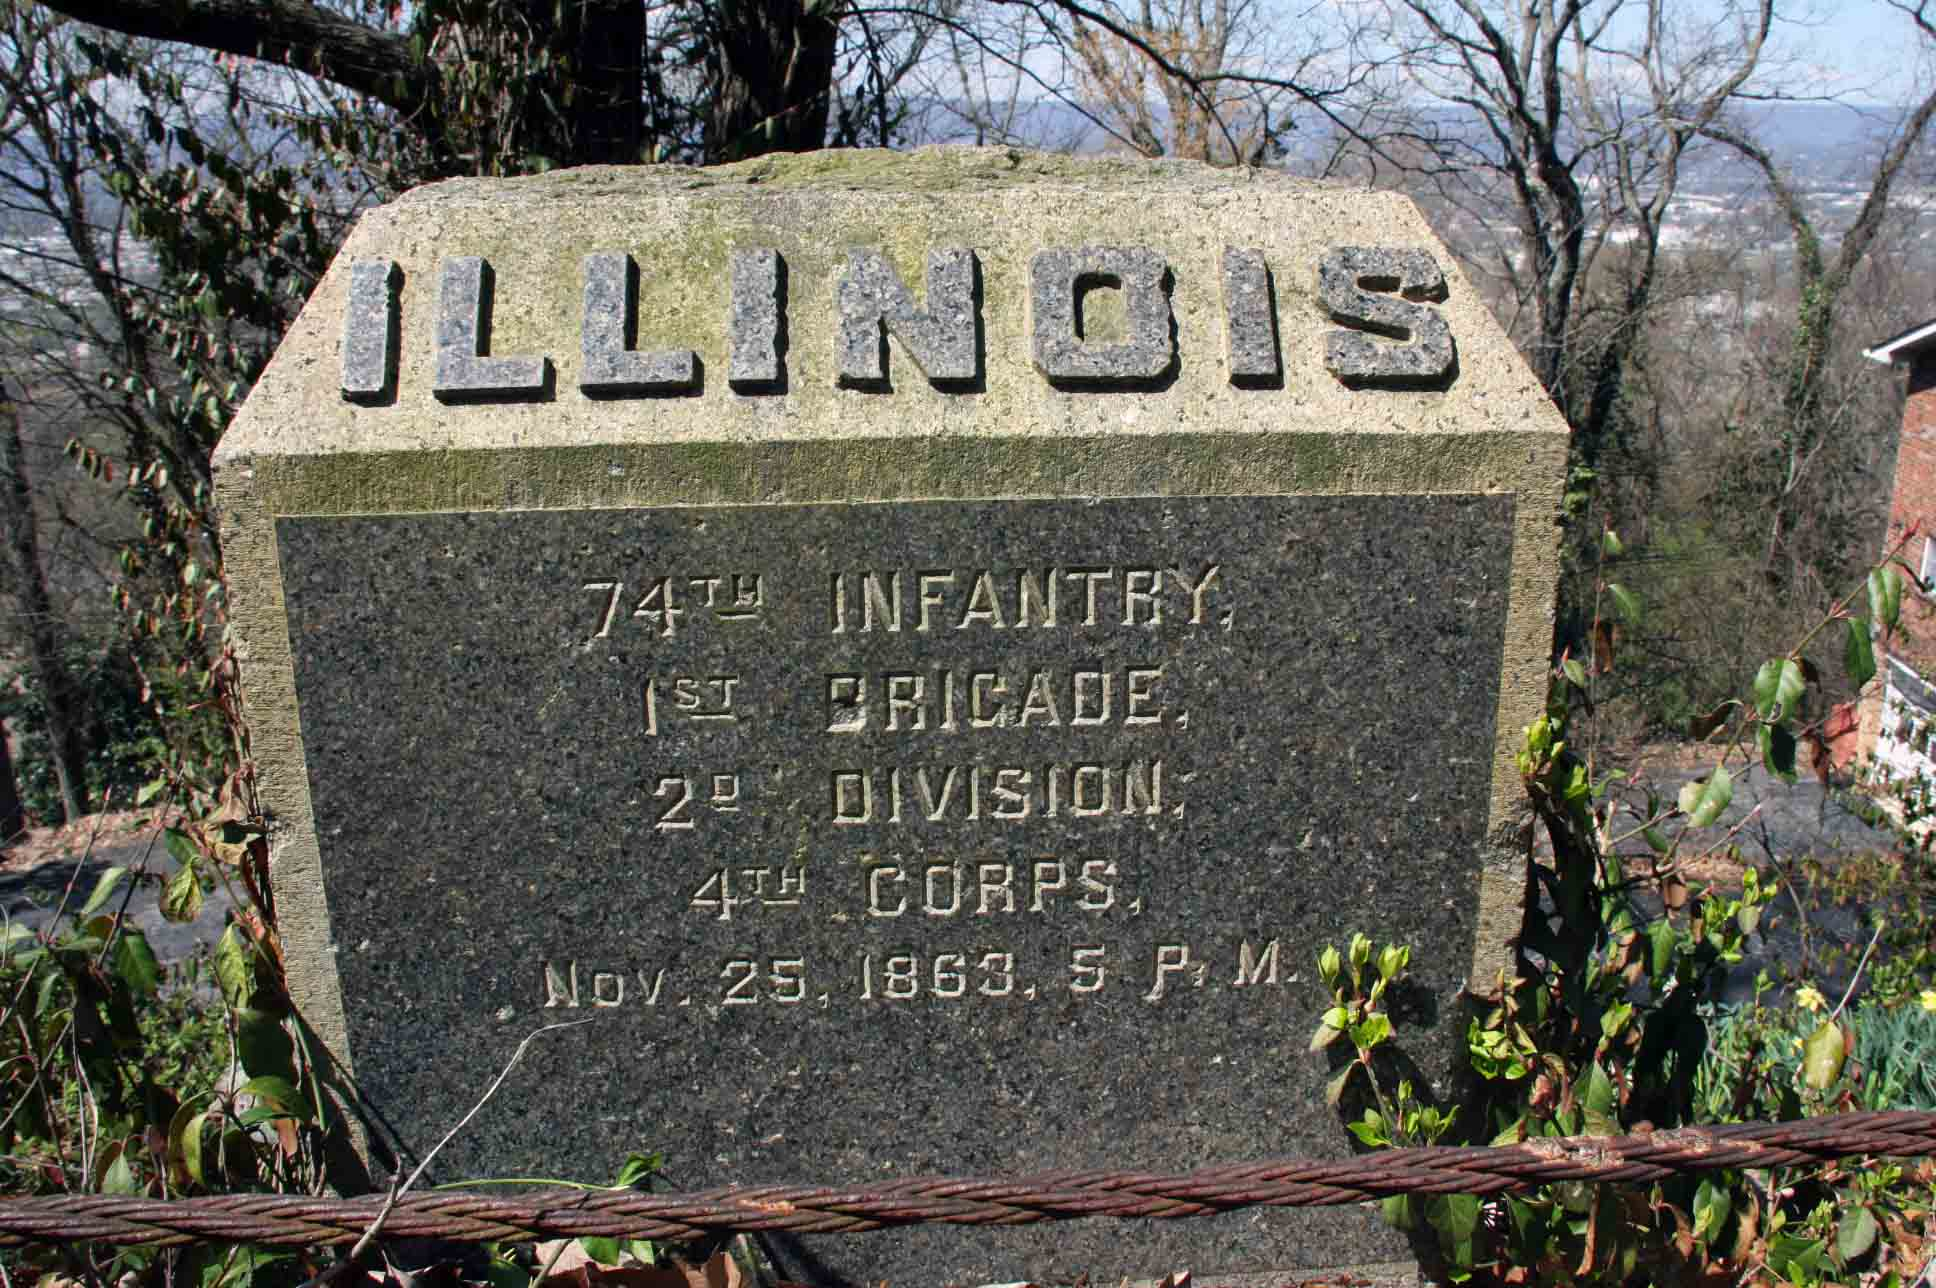 74th Illinois Infantry Regiment Marker, click photo to enlarge.